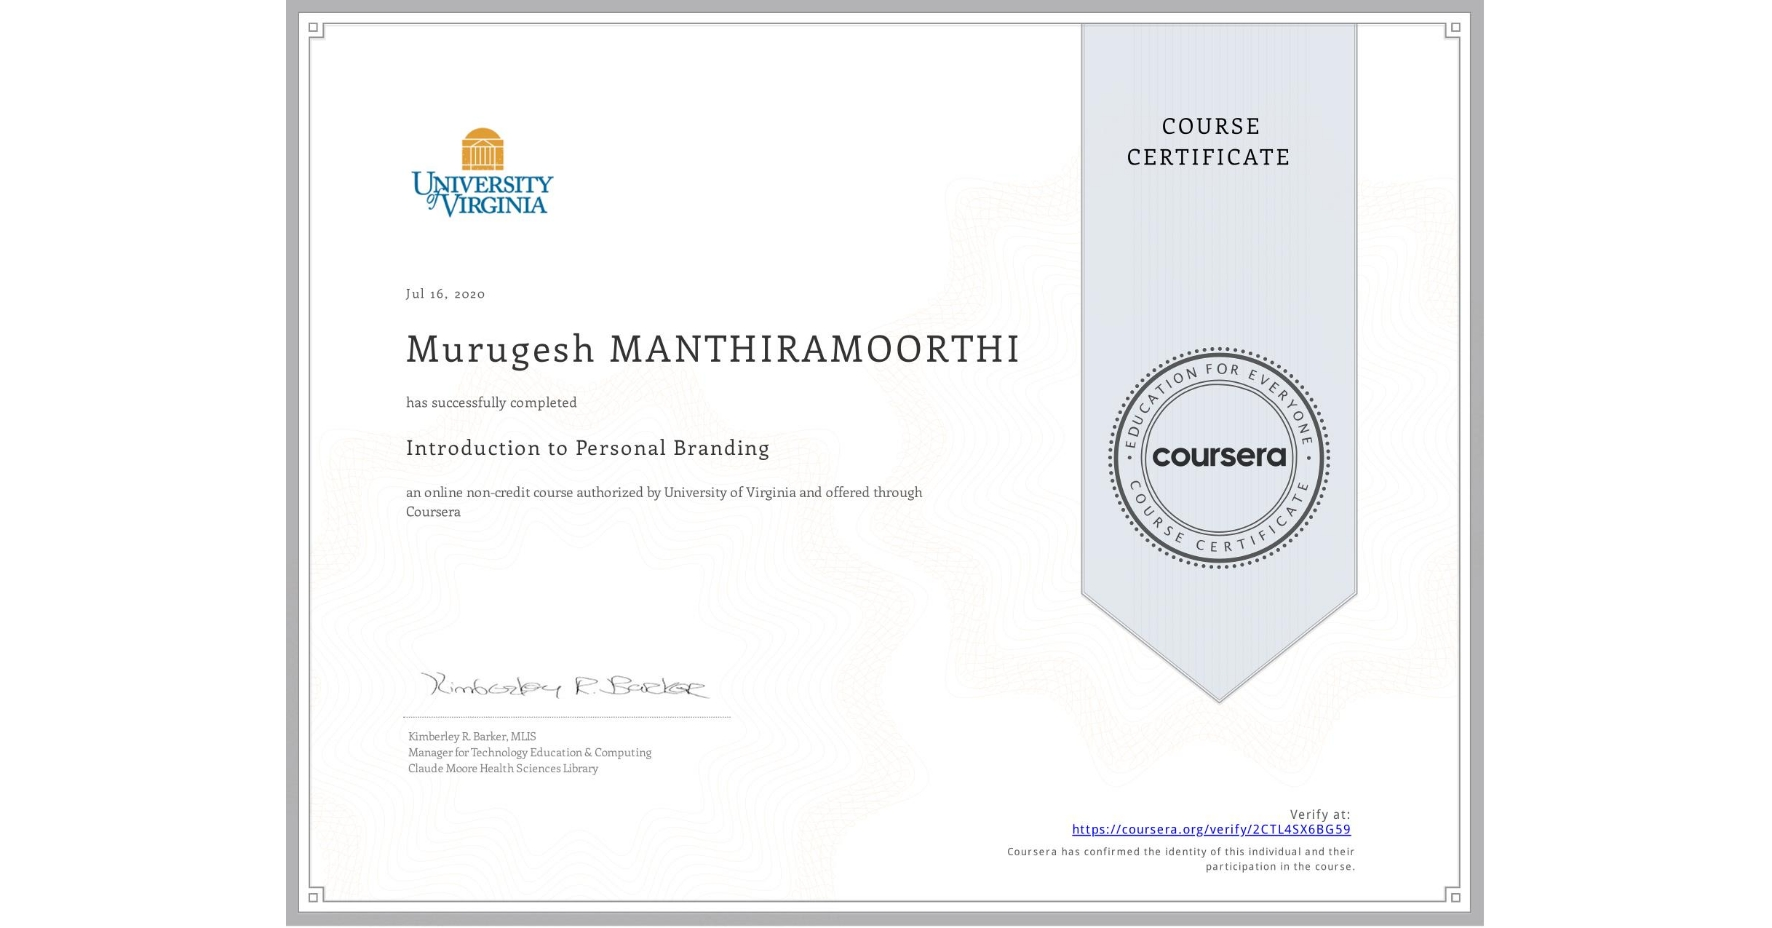 View certificate for Murugesh Manthiramoorthi, Introduction to Personal Branding, an online non-credit course authorized by University of Virginia and offered through Coursera